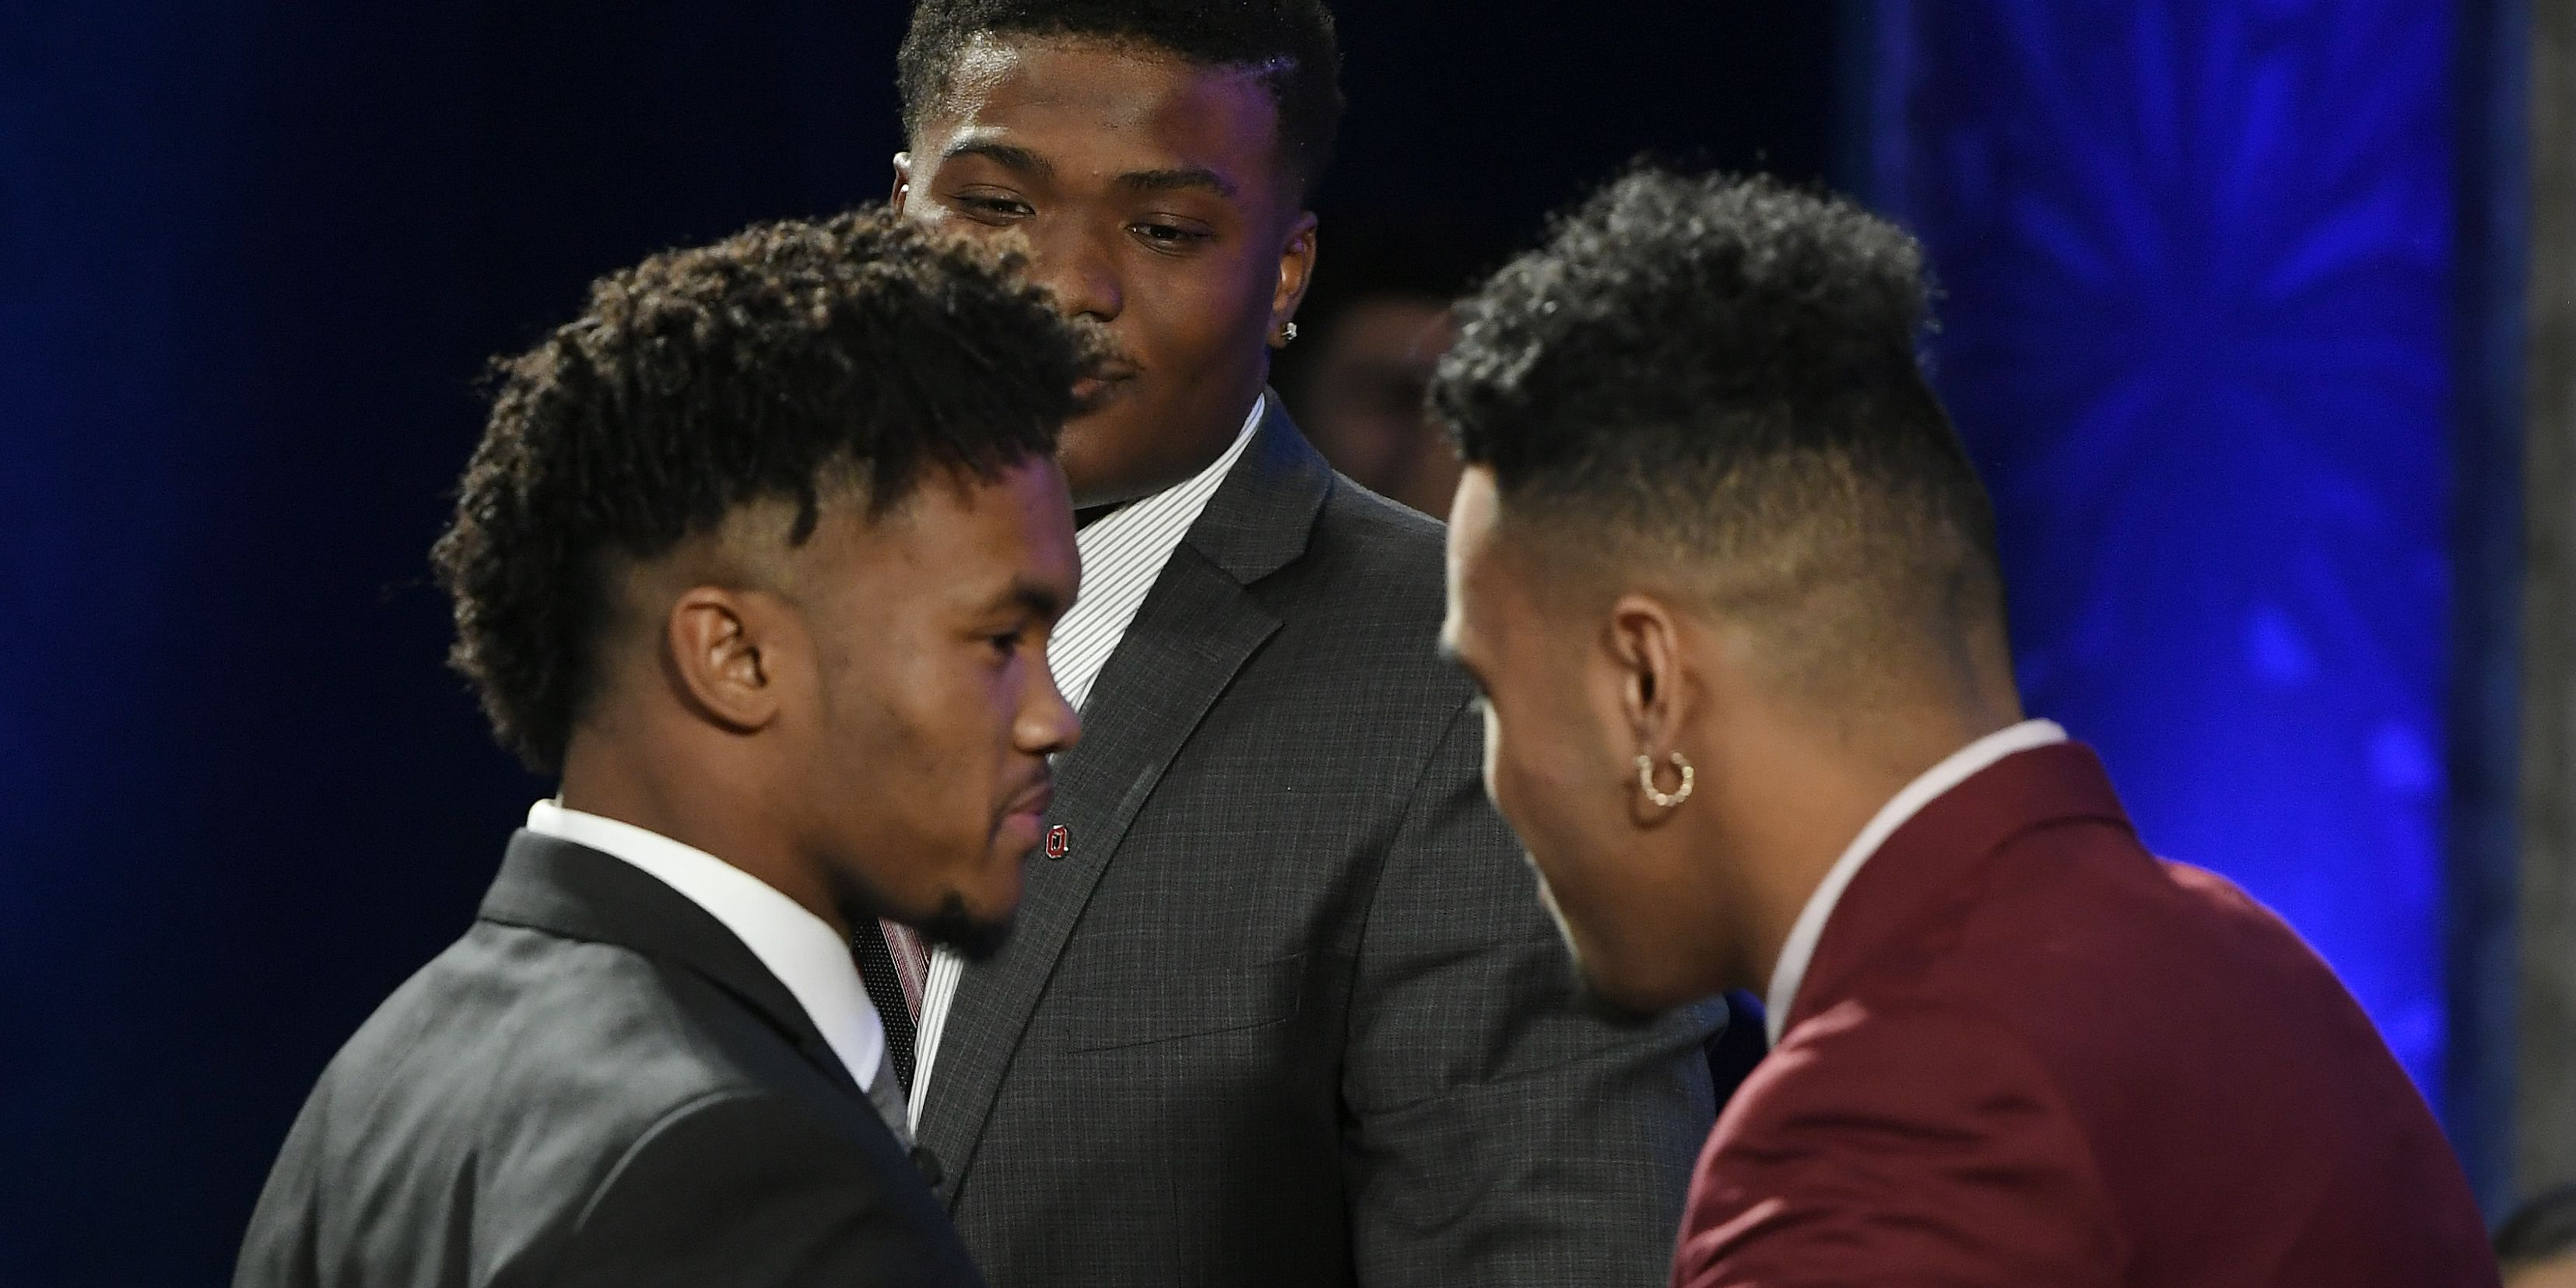 By-the-numbers: How Heisman voters chose Kyler Murray over Tua